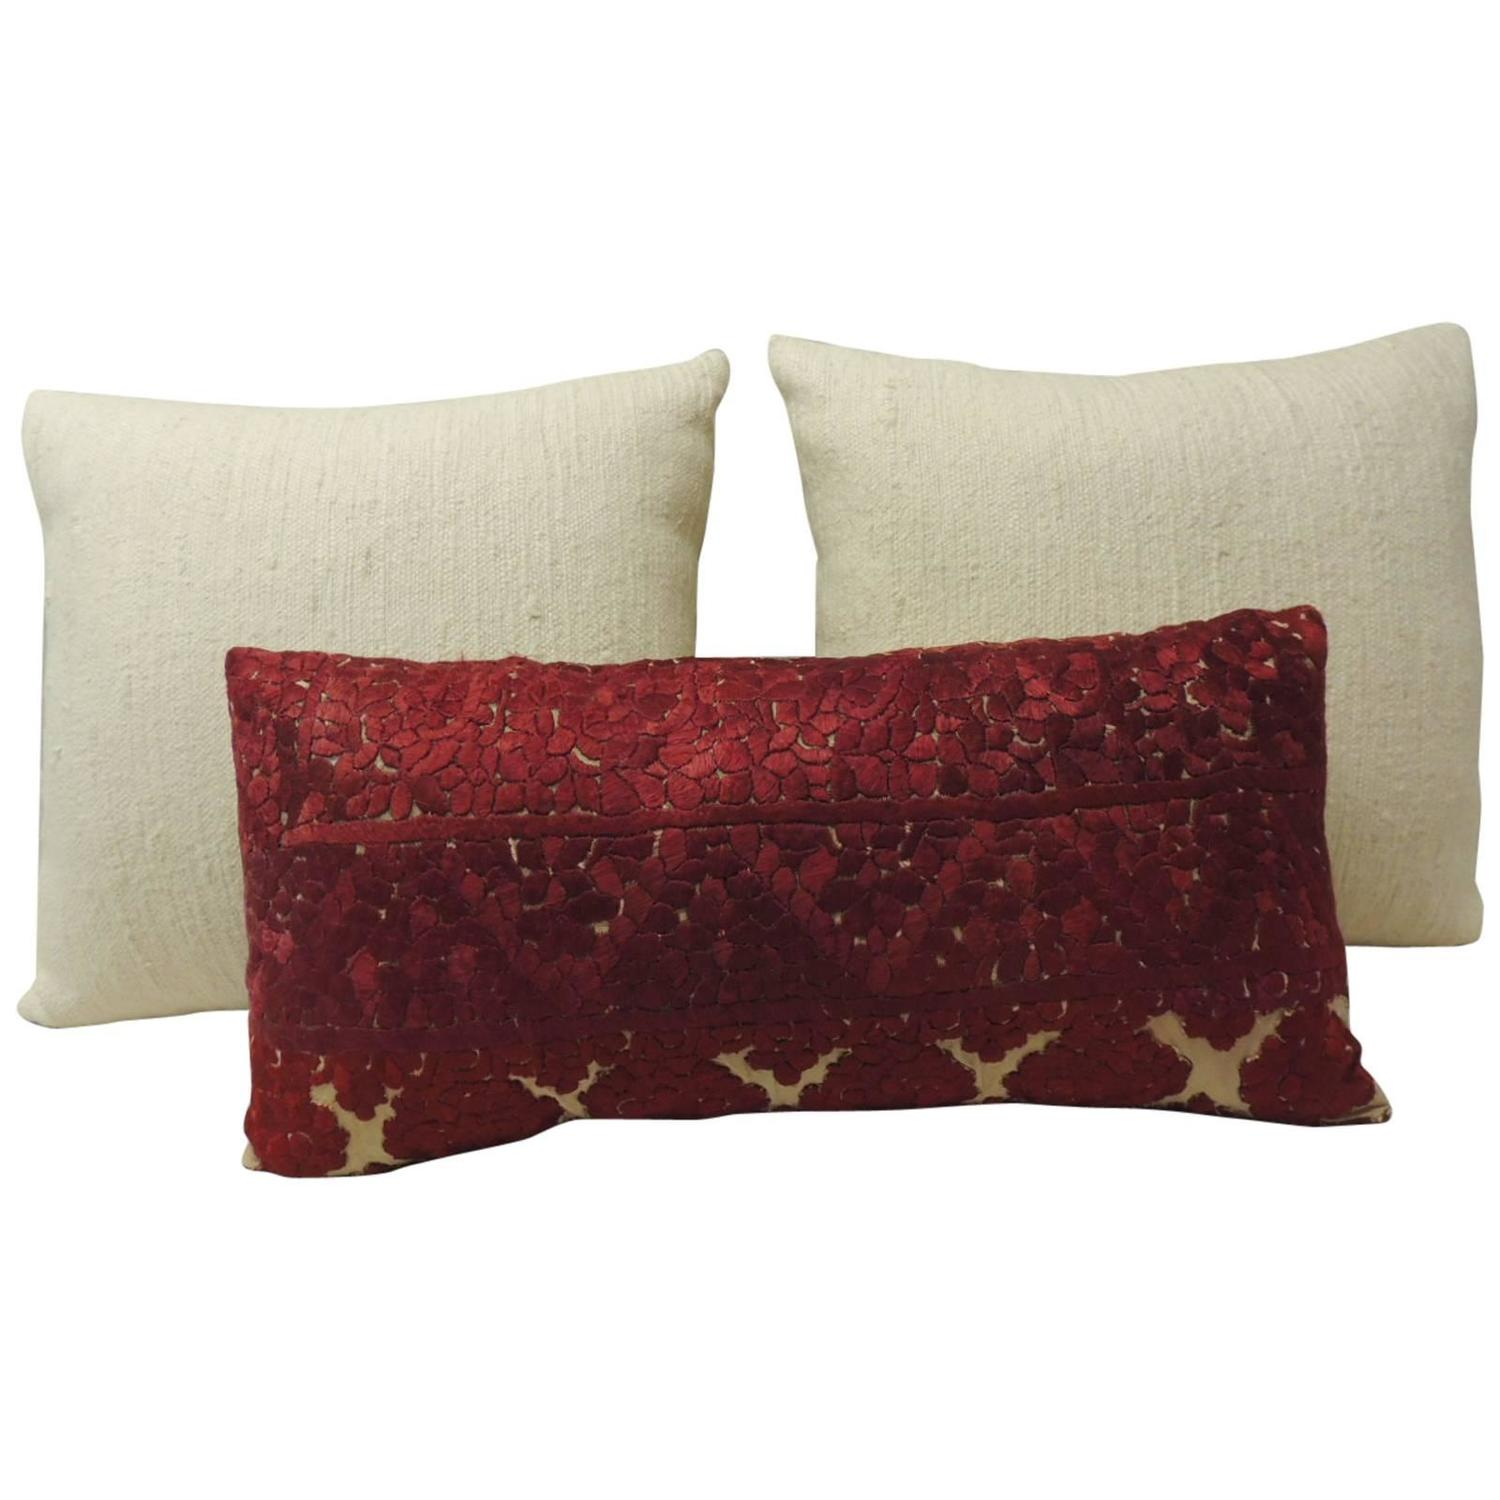 Throw Pillows Malum : Decorative Moroccan Pillows For Sale at 1stdibs